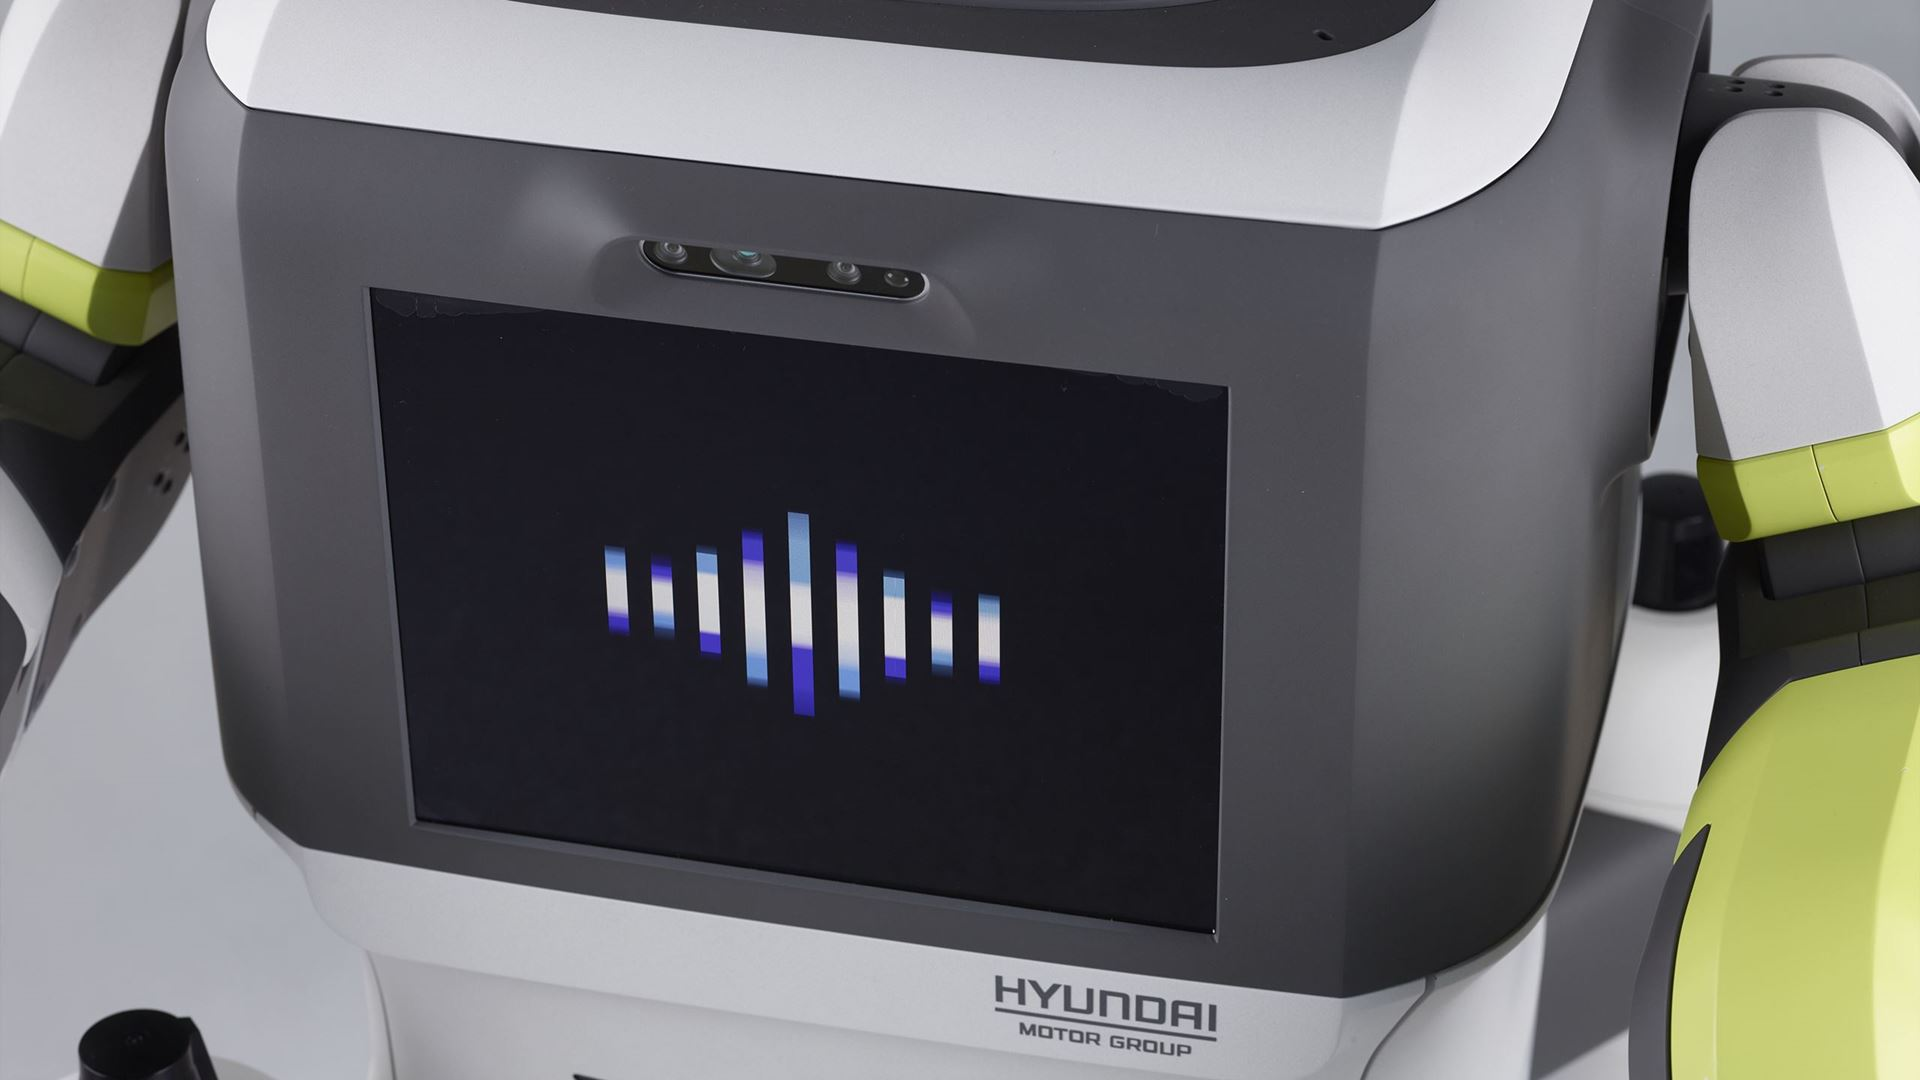 Hyundai Motor Group Introduces Advanced Humanoid Robot 'DAL-e' for Automated Customer Services - Image 1